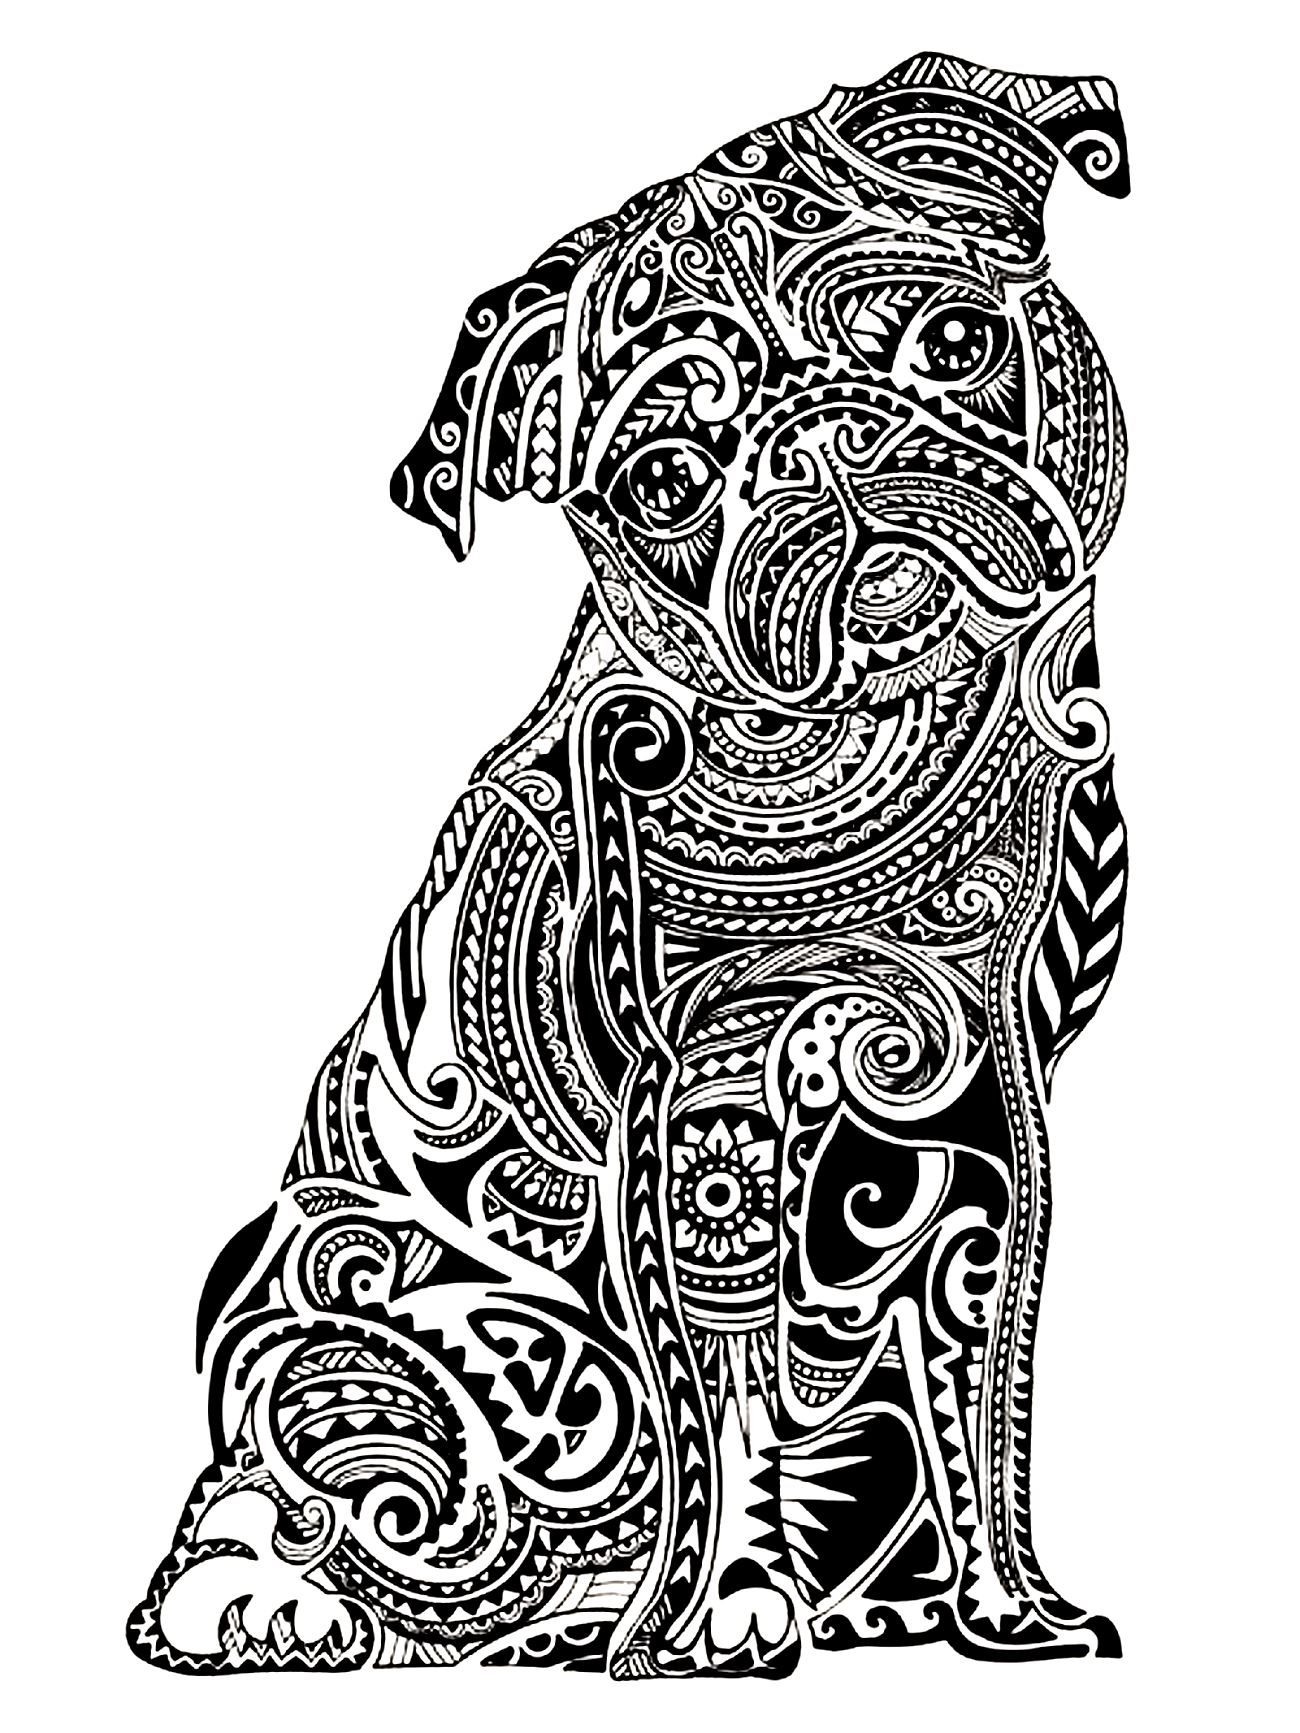 Coloring pages for adults cute - Discover Our Free Adult Coloring Pages Various Themes Artists Difficulty Levels The Perfect Anti Stress Activity For You